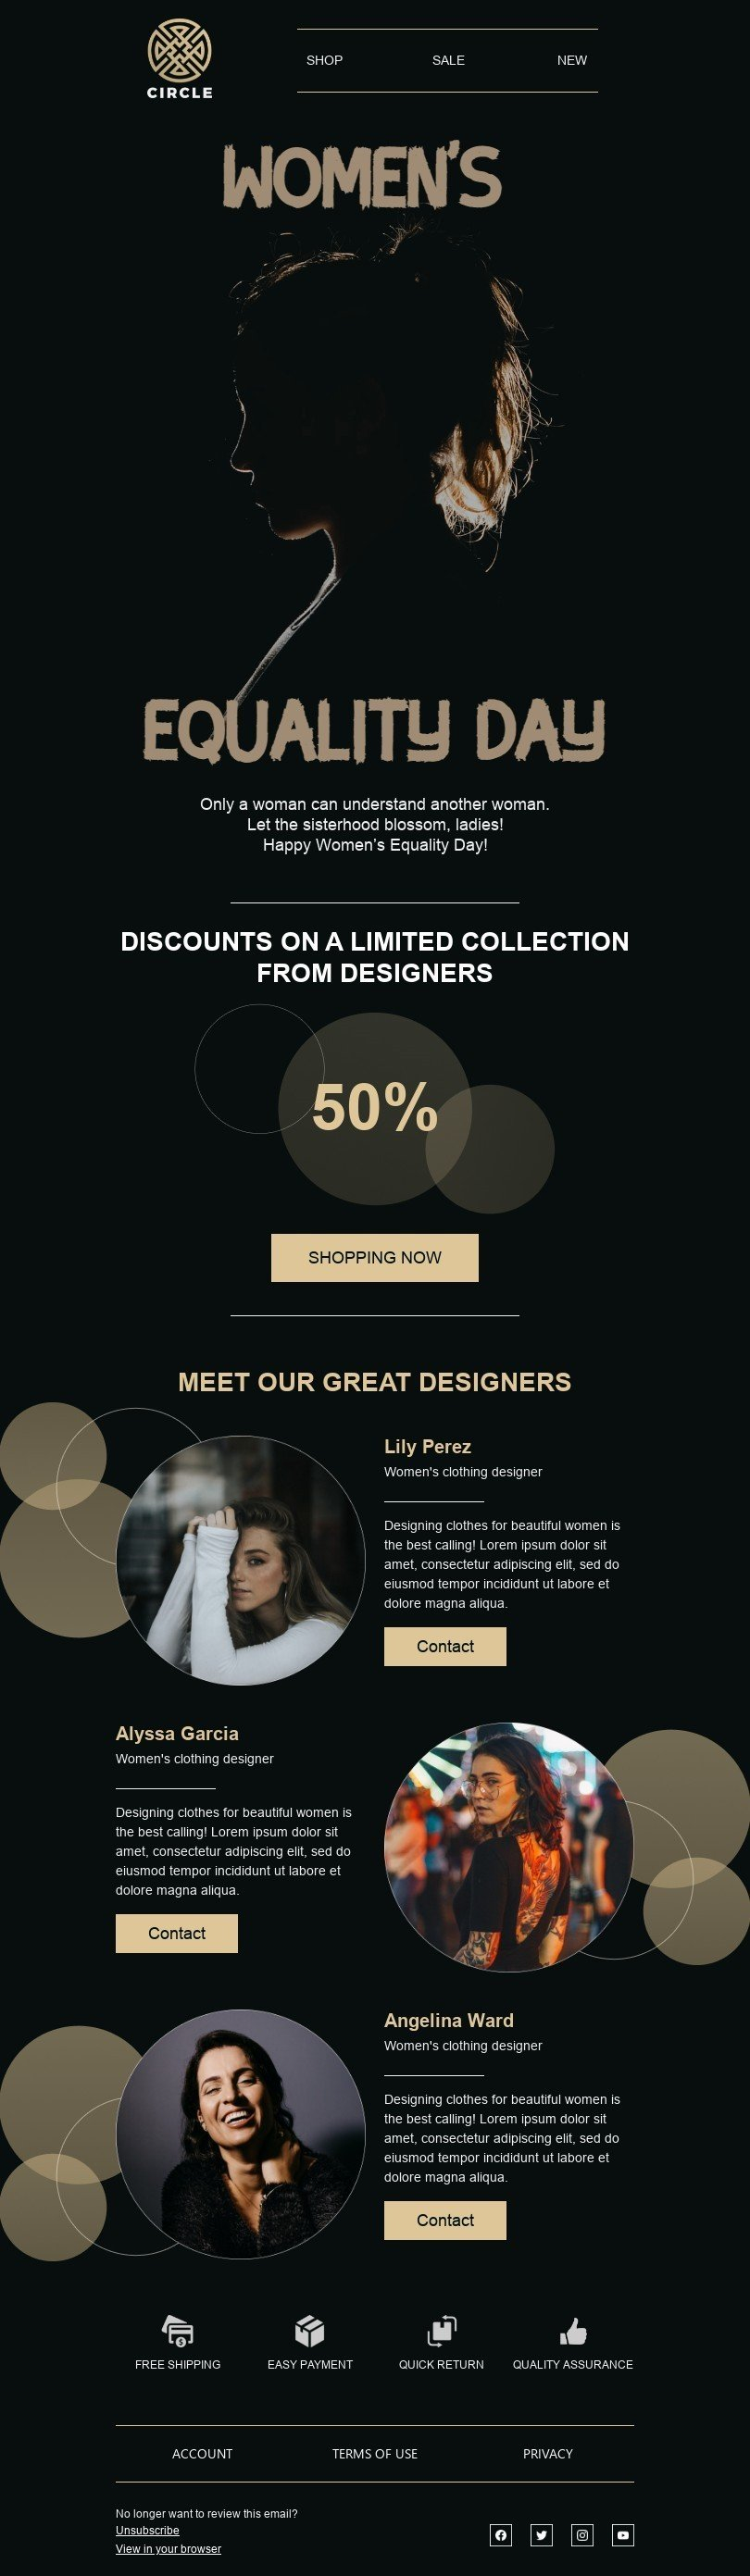 Women's Equality Day Email Template «Let the sisterhood blossom» for Fashion industry desktop view